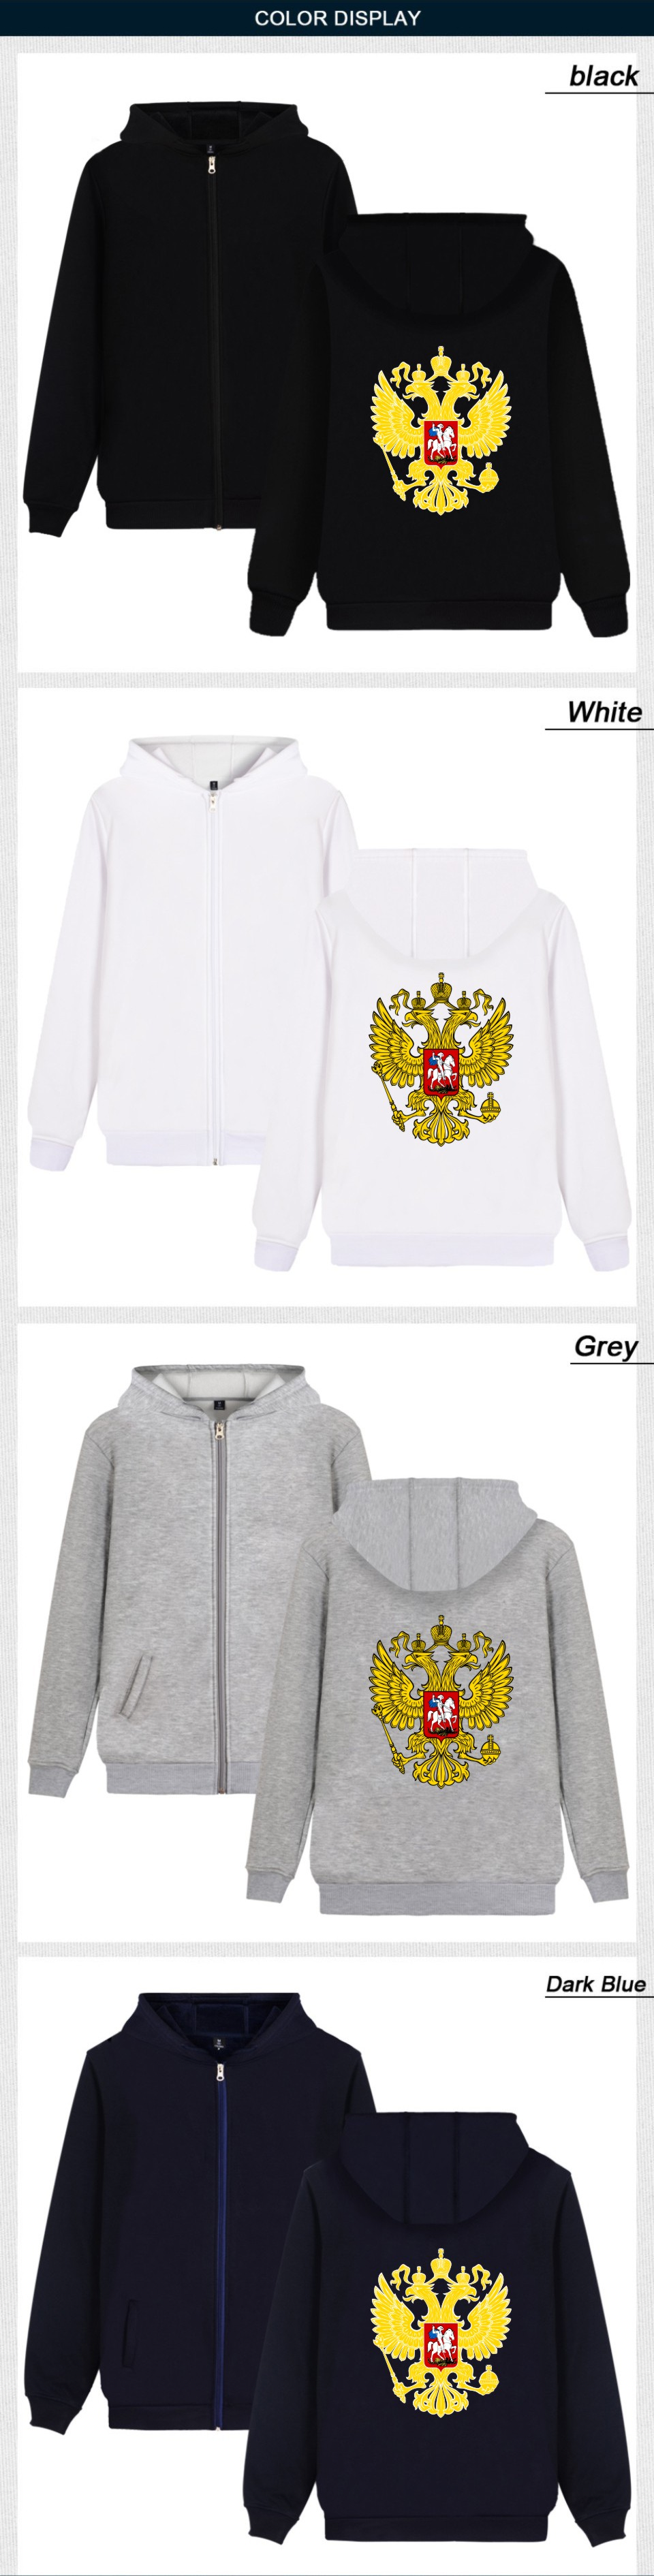 Russia Is Our Power Hoodies With Zipper Men Women Brand Clothing Double-headed Eagle Russia Style Cotton Hooded Sweatshirts